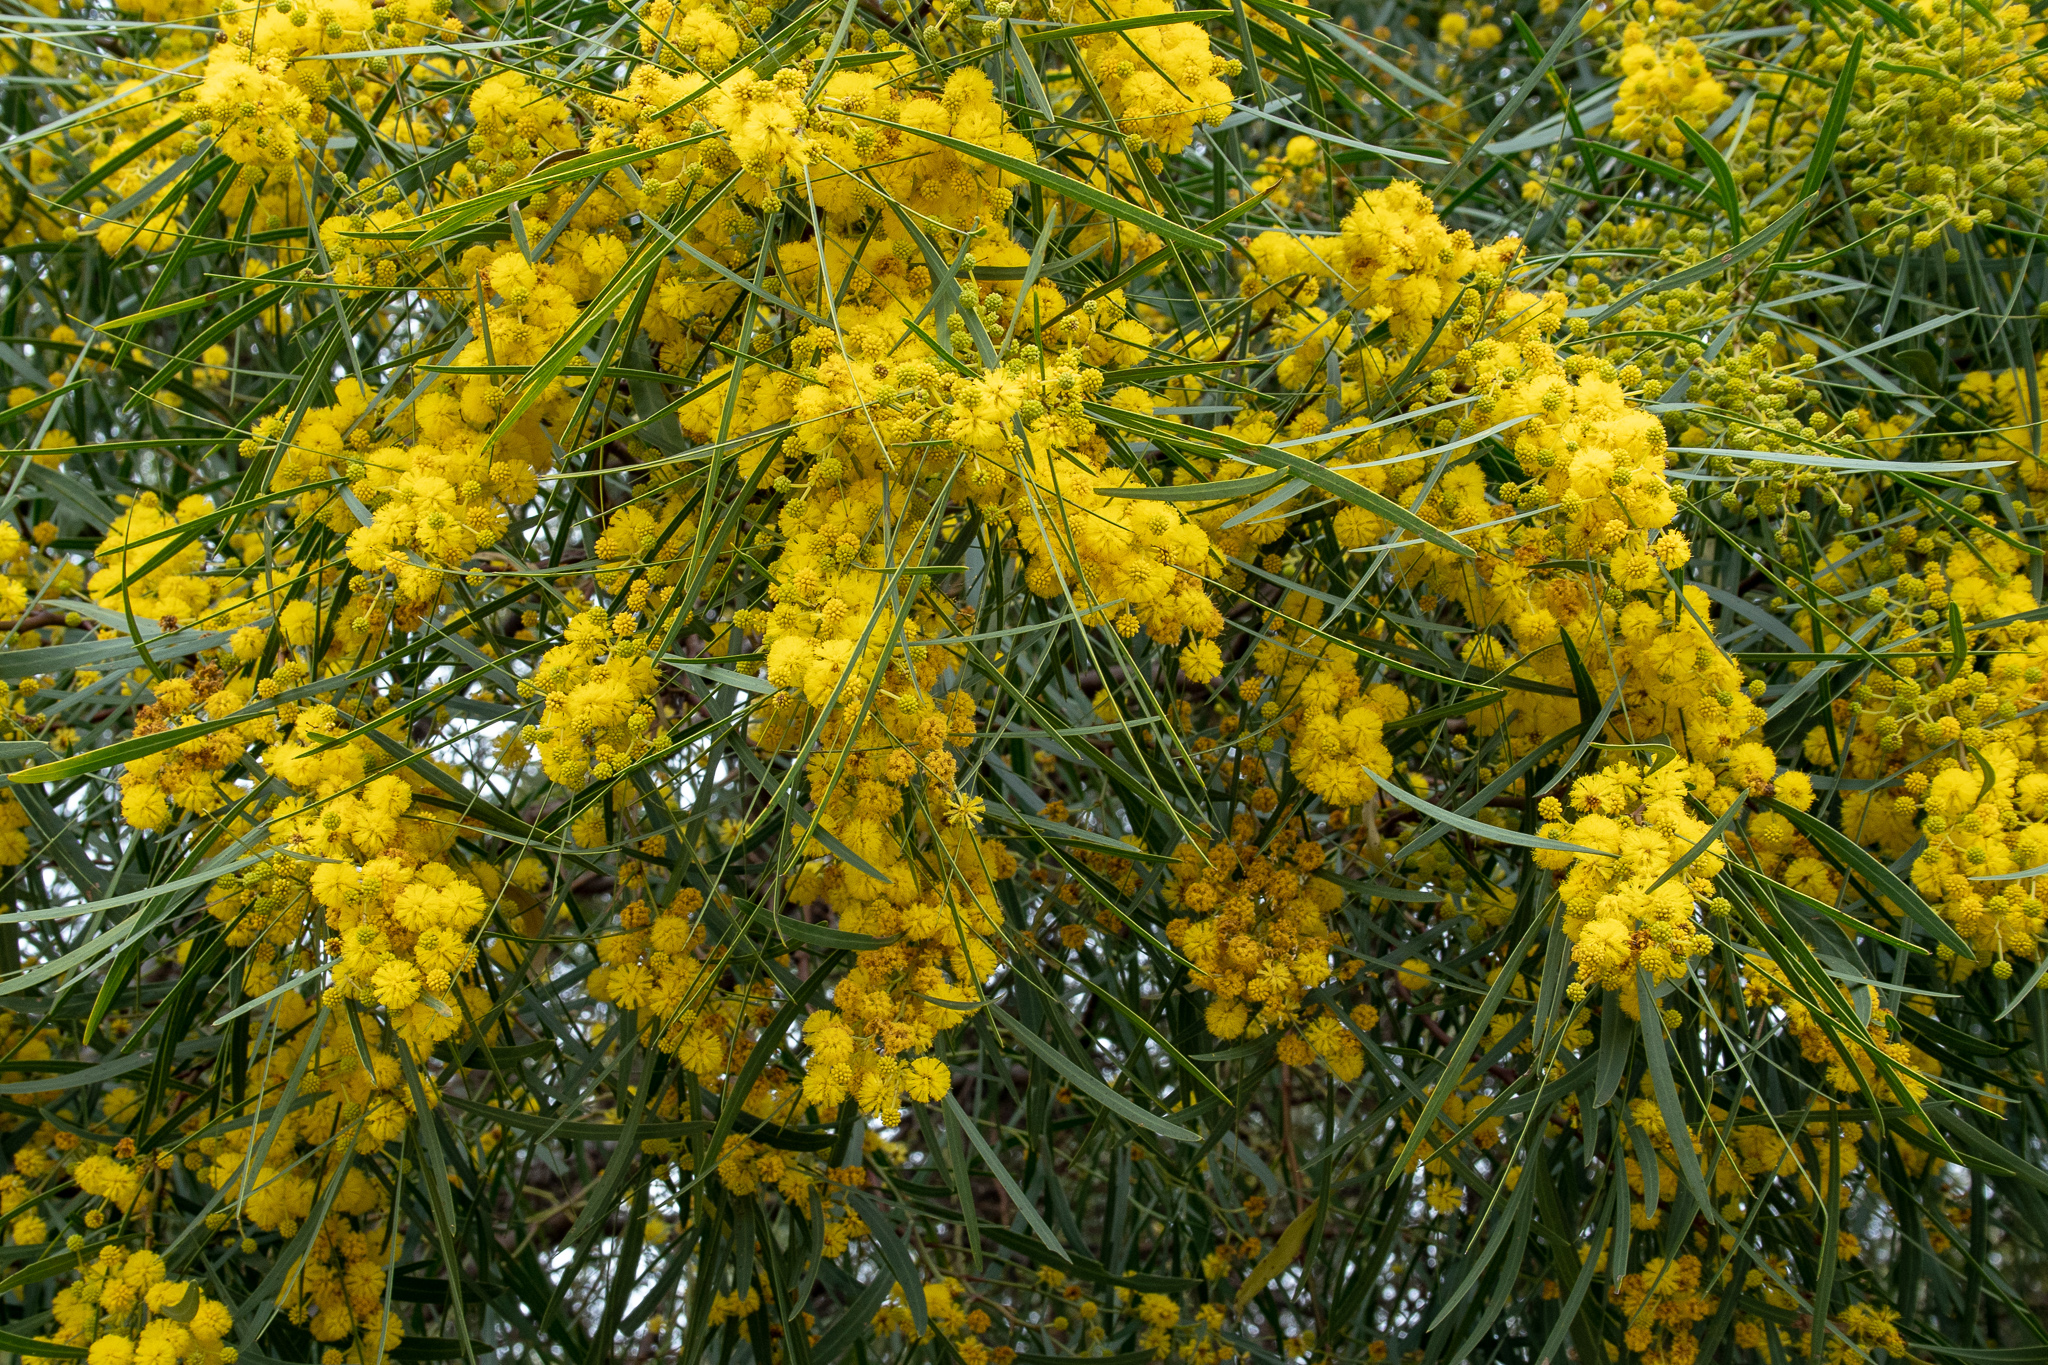 Golden-wreath wattle